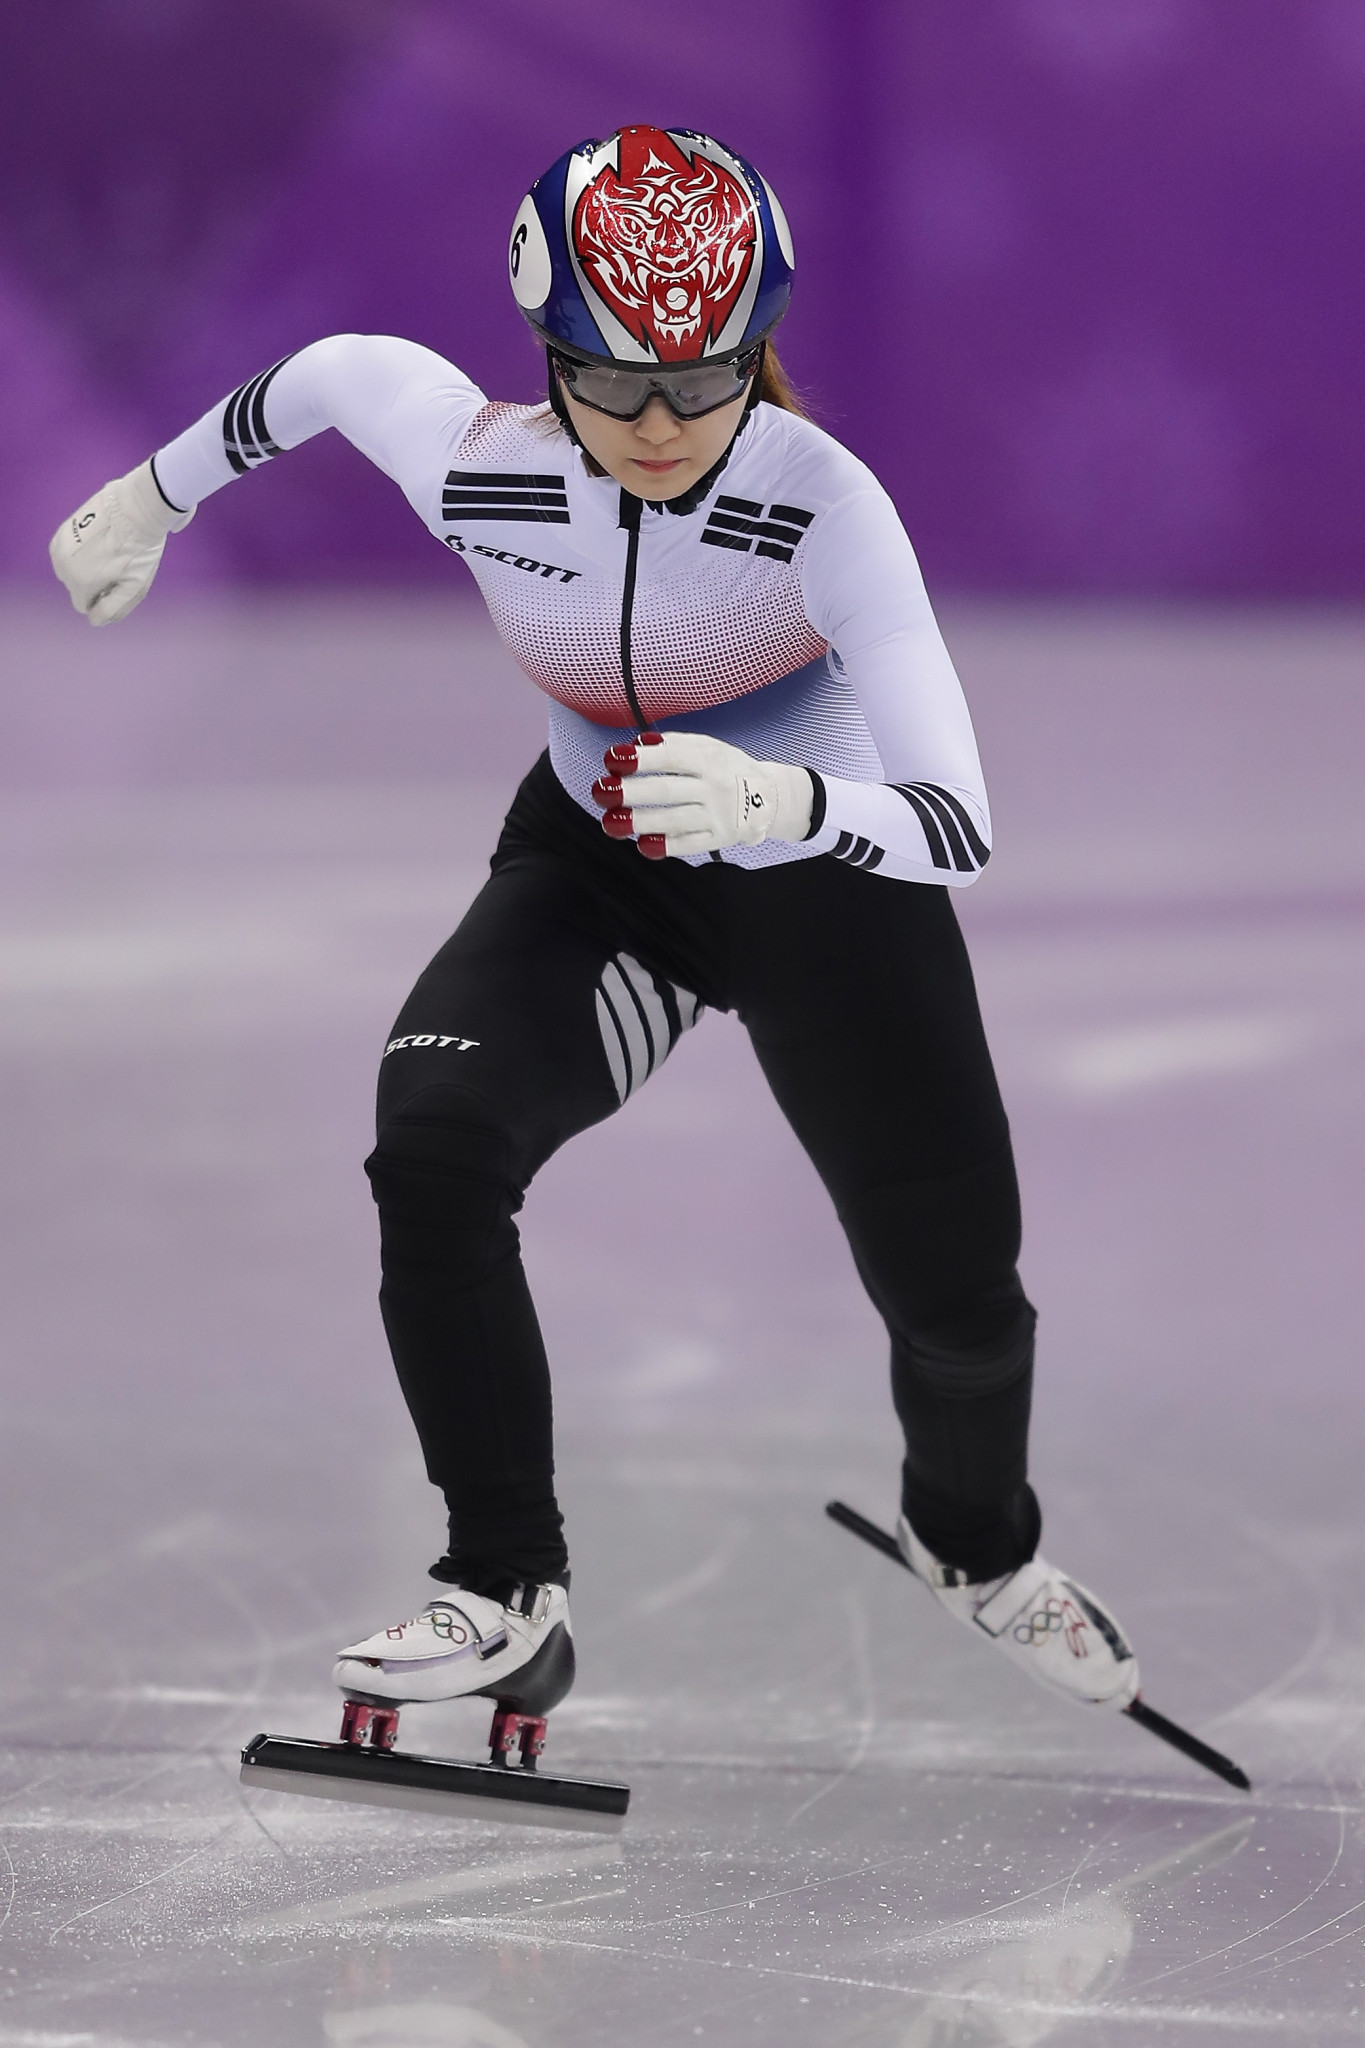 South Korean Olympic champion Choi Min-jeong recorded the fastest time in the women's 1500m quarter-finals ©Getty Images